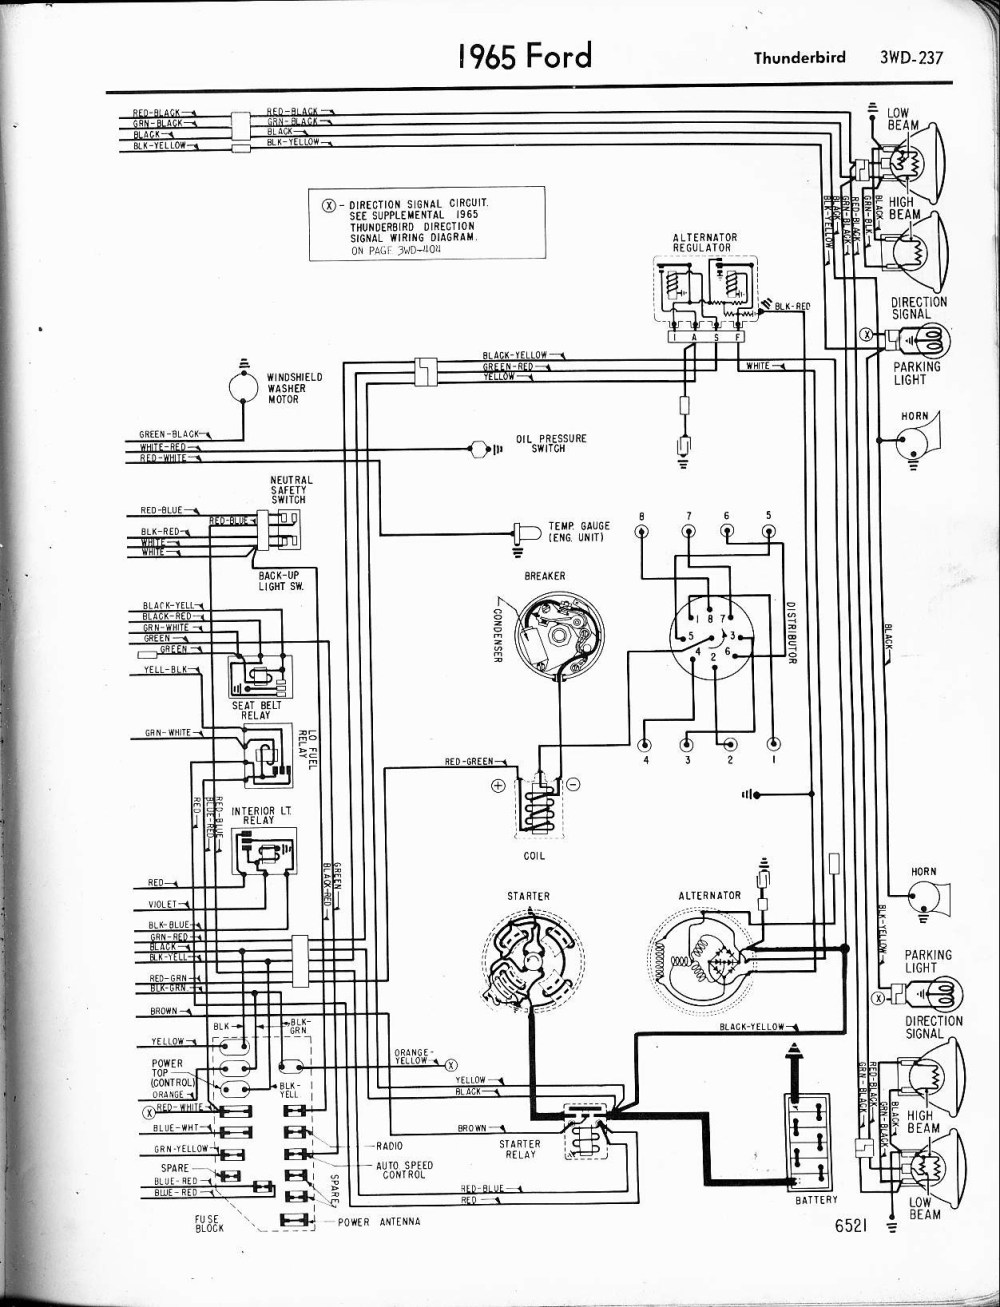 medium resolution of 1977 ford ltd wiring diagram wiring library 1979 ford thunderbird wiring diagram example electrical wiring rh